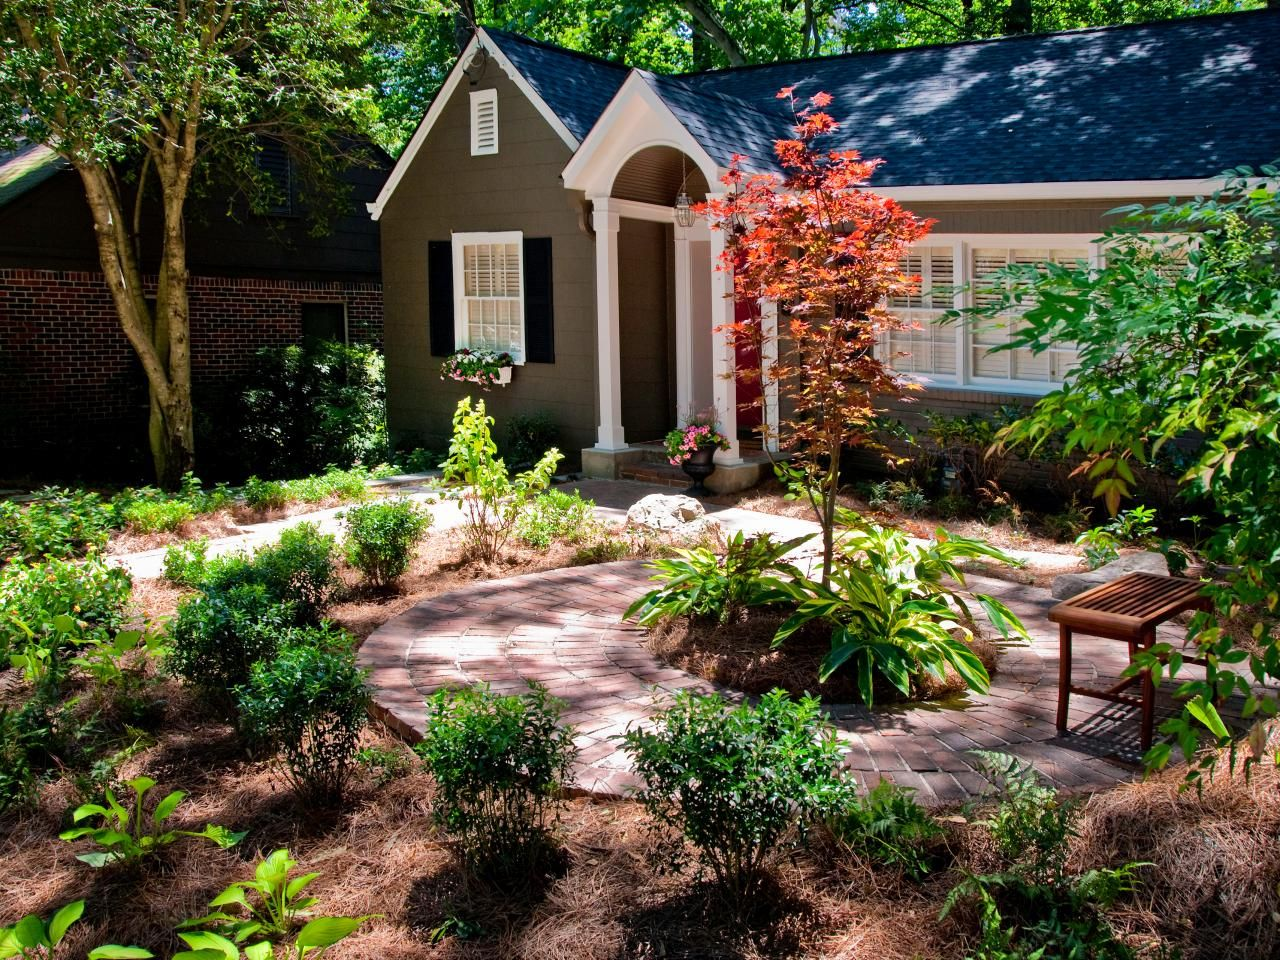 Garden and patio diy front yard landscaping ideas for for Landscaping ideas around house